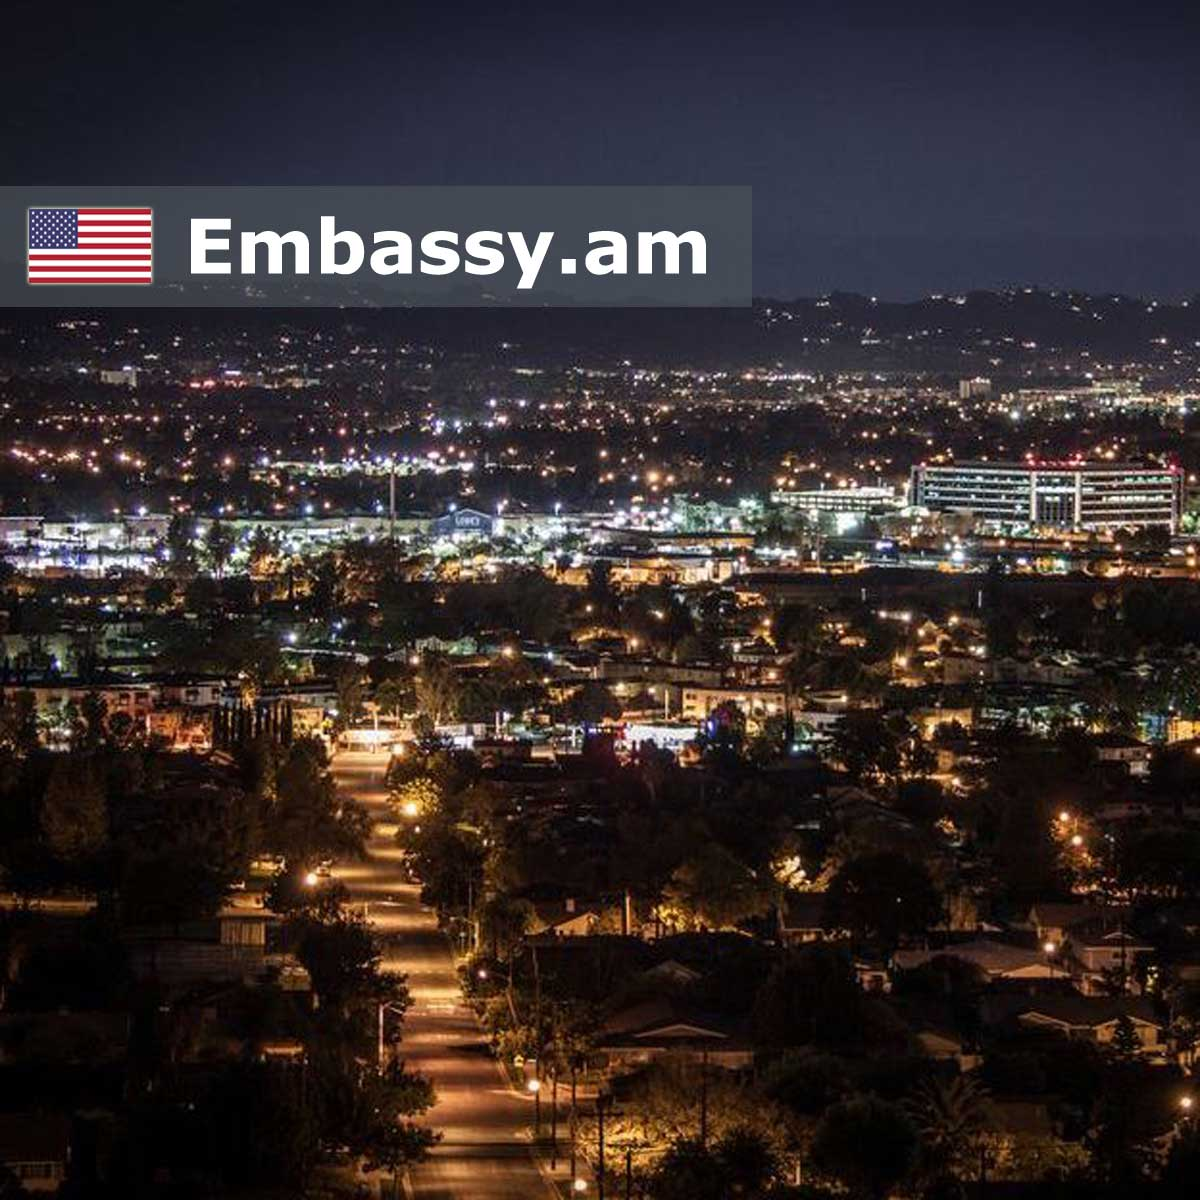 Glendale - Hotels in United States of America - Embassy.am